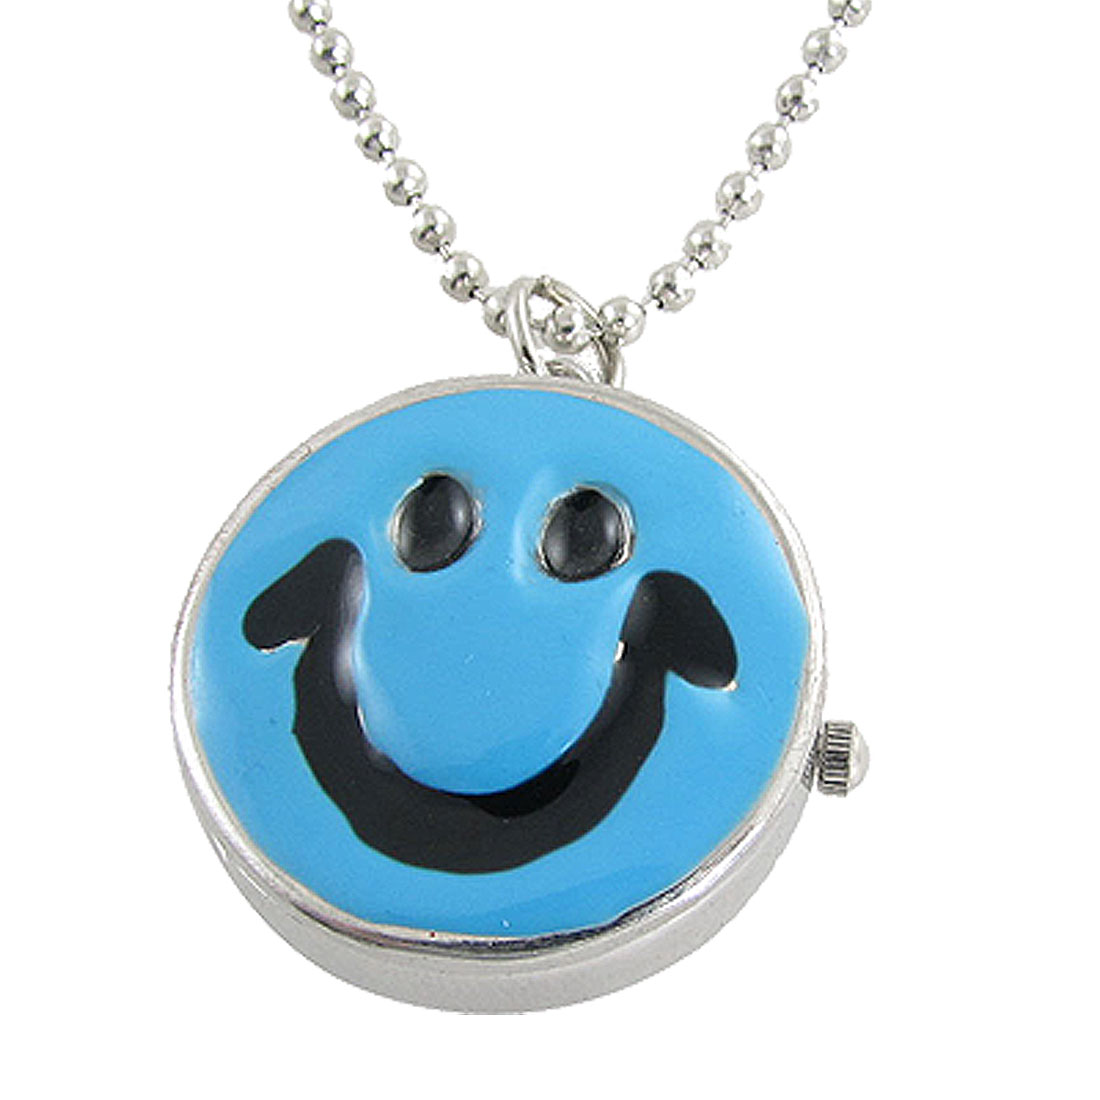 Blue Black Smile Face Pendant Necklace Watch for Lady